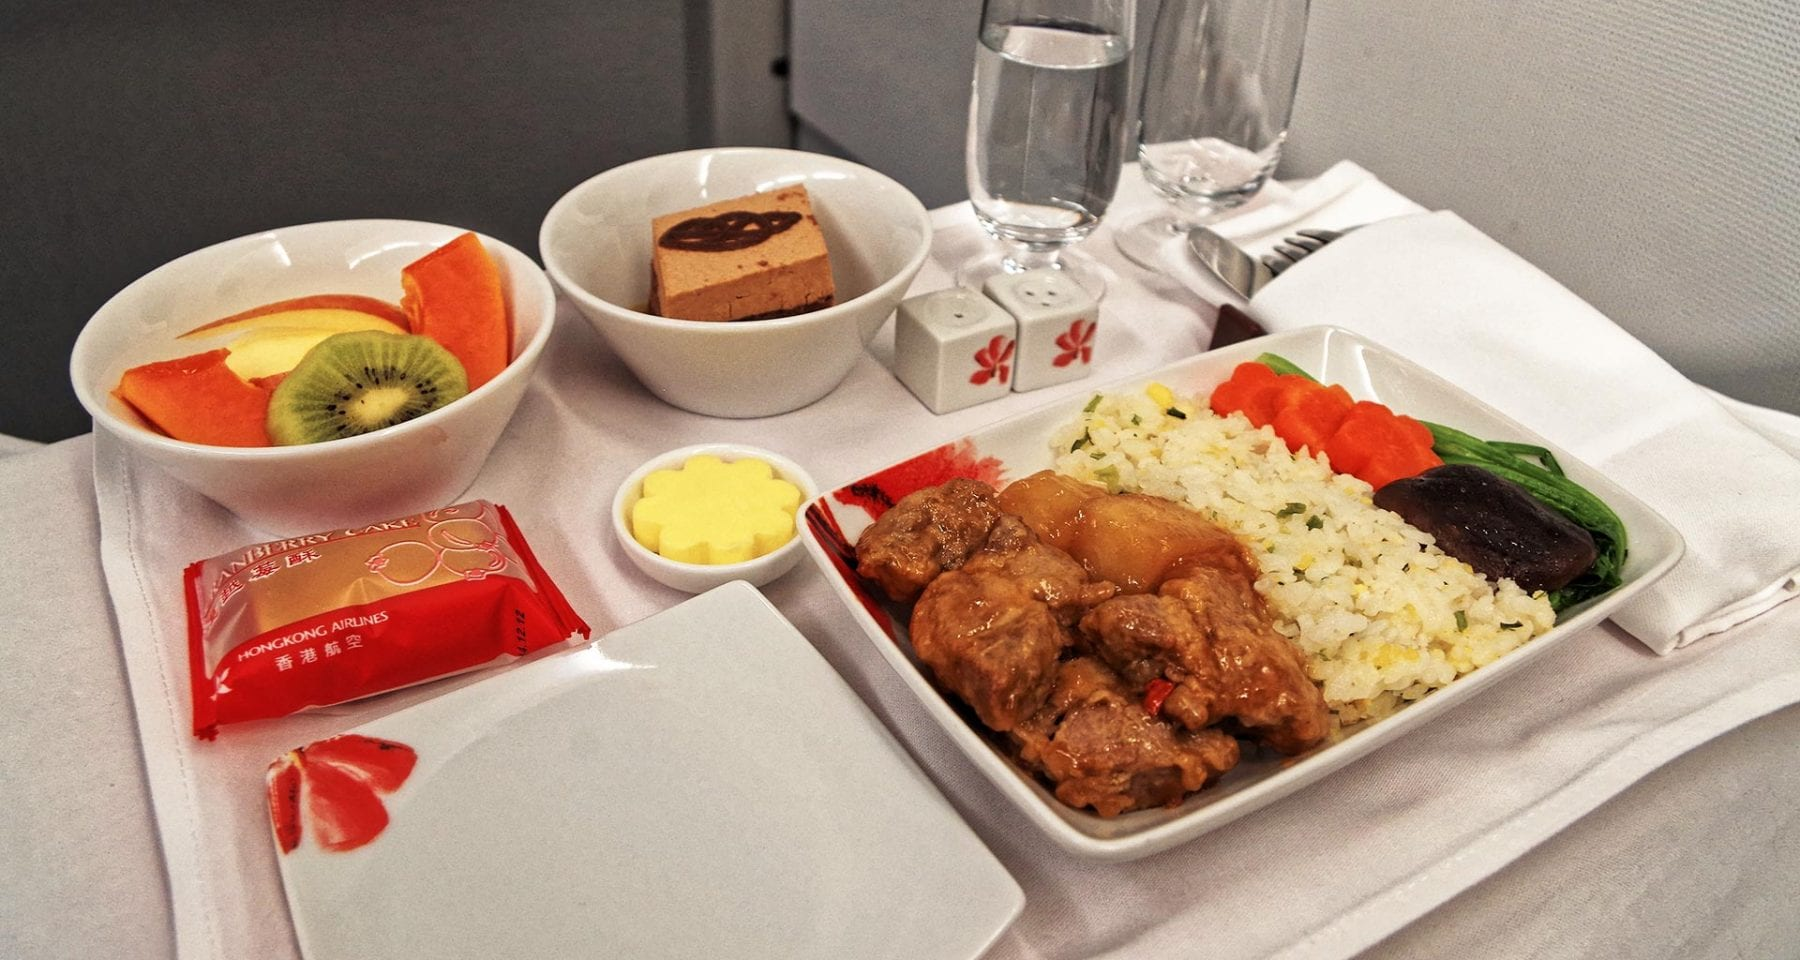 Hong Kong airlines business class meal tray